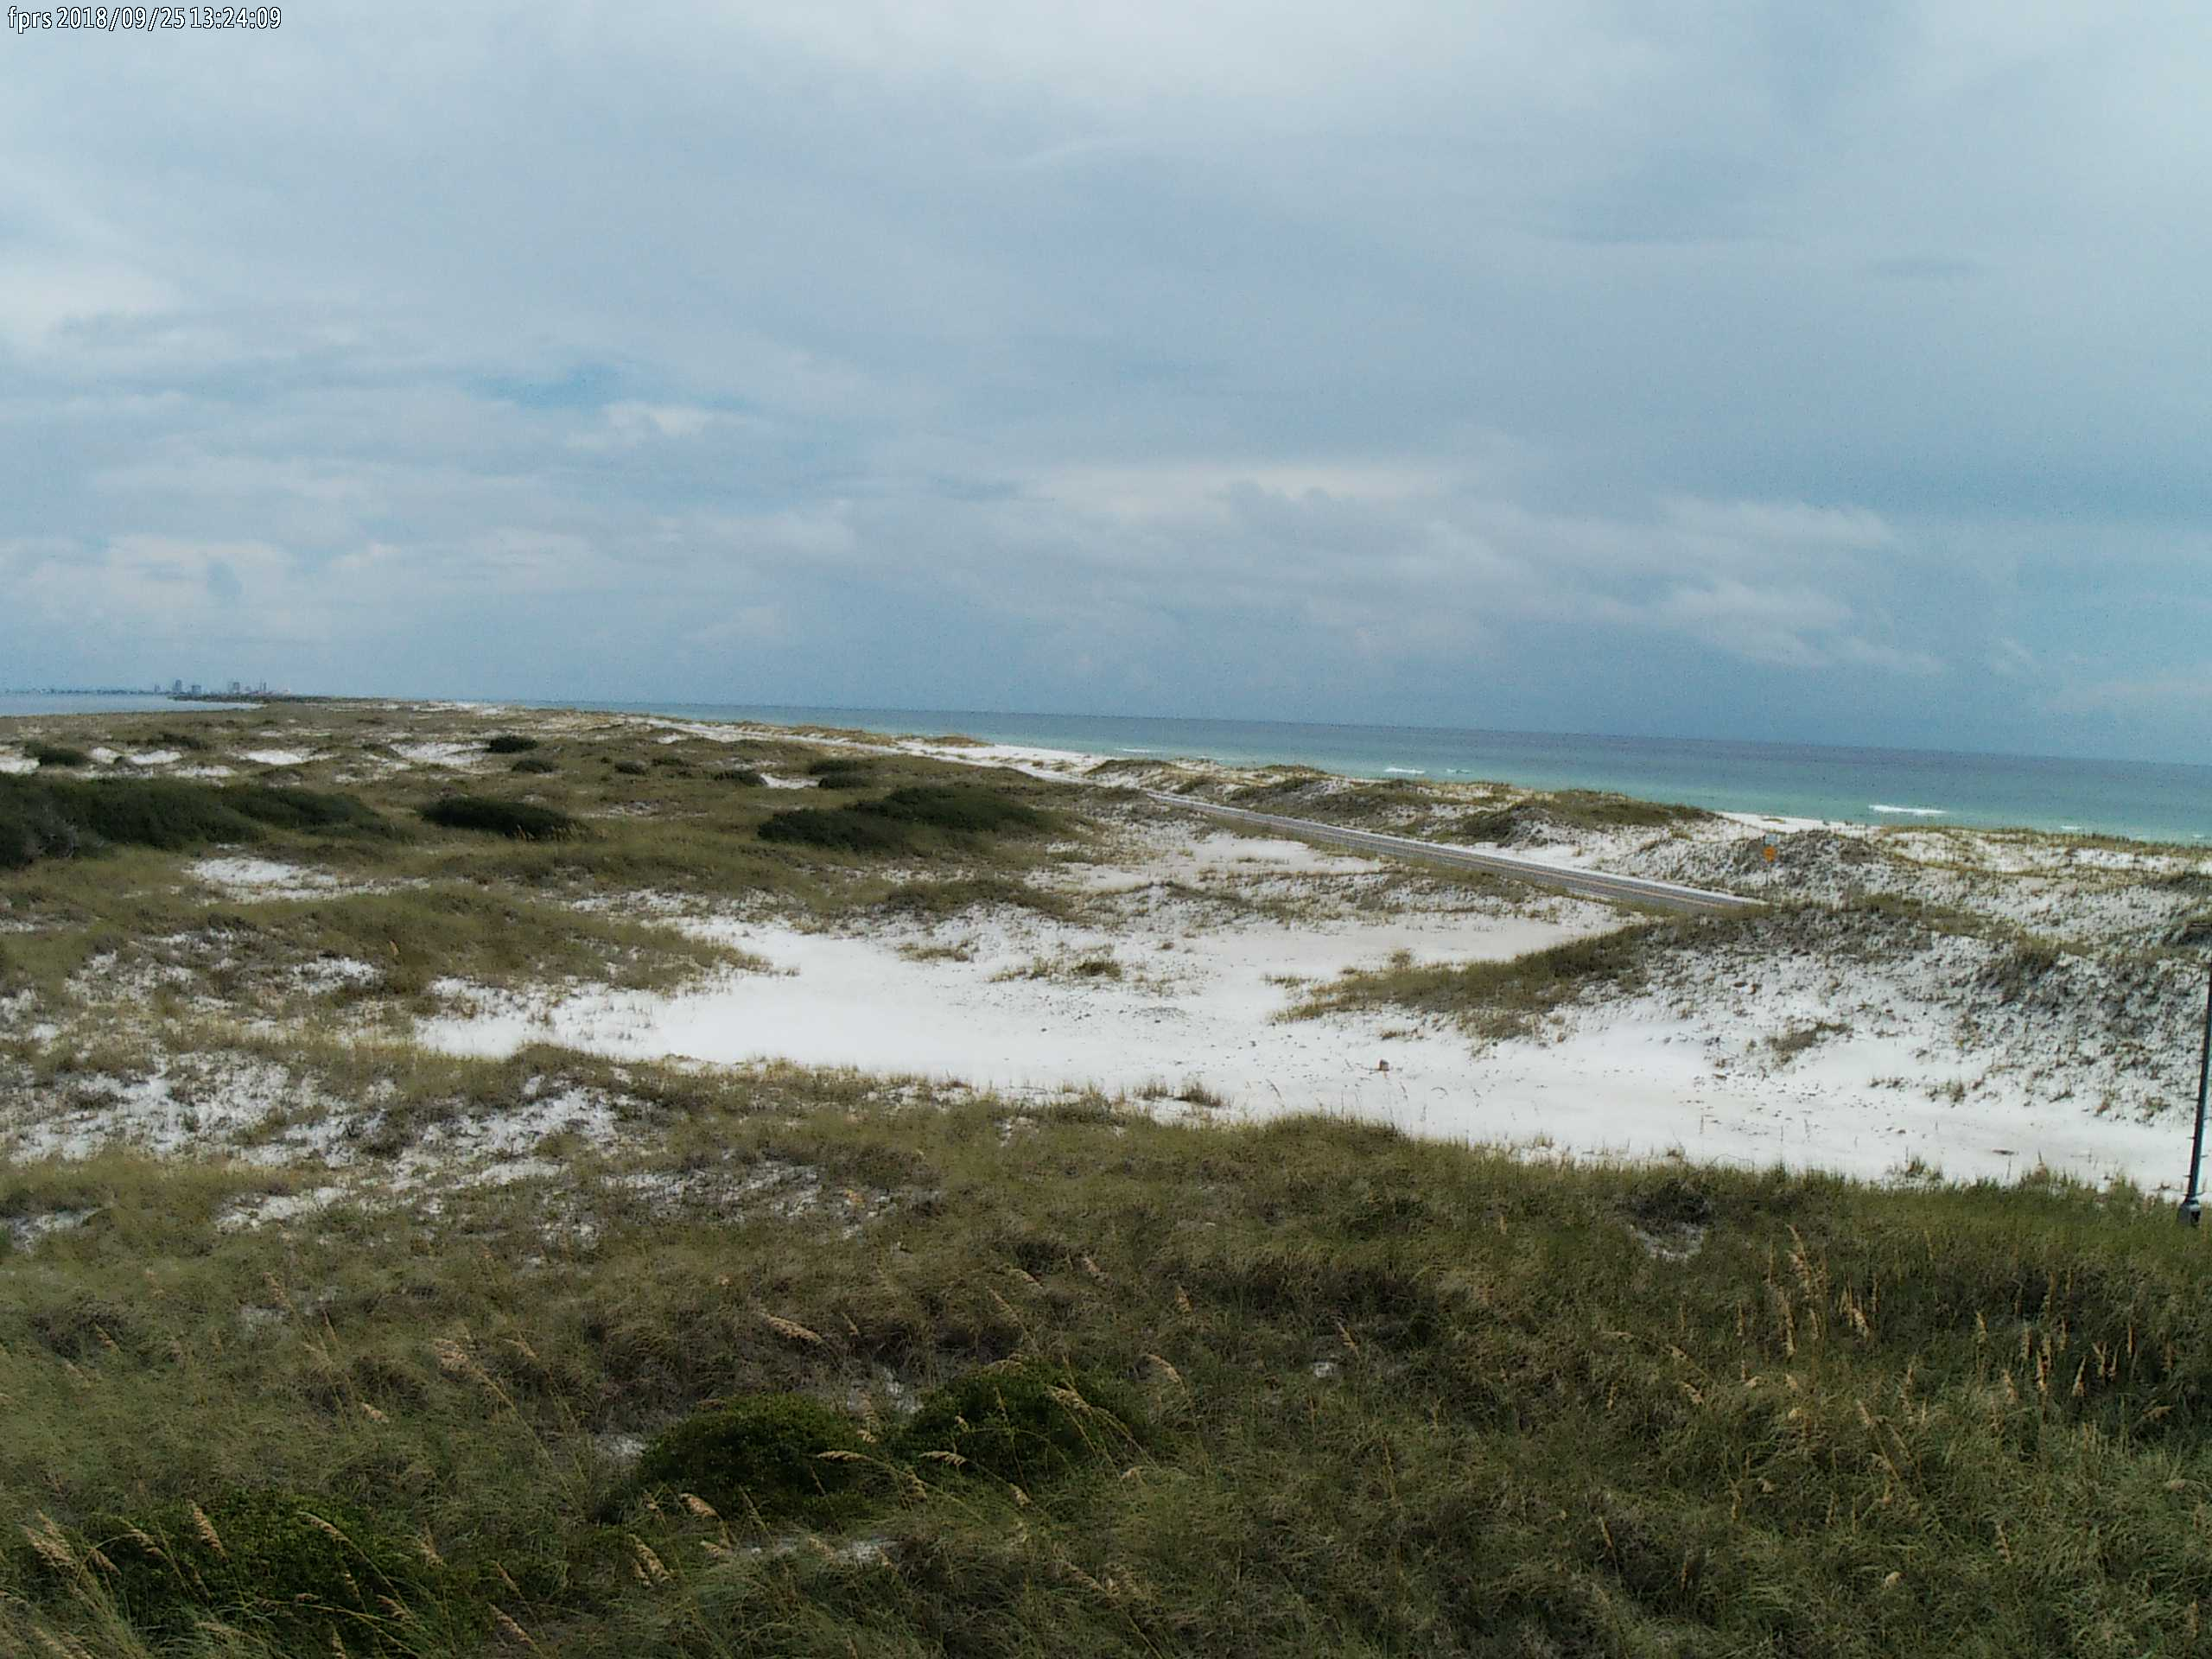 A daytime beach scene showing white sands, vegetation covered dunes, and emerald green waters in the background.